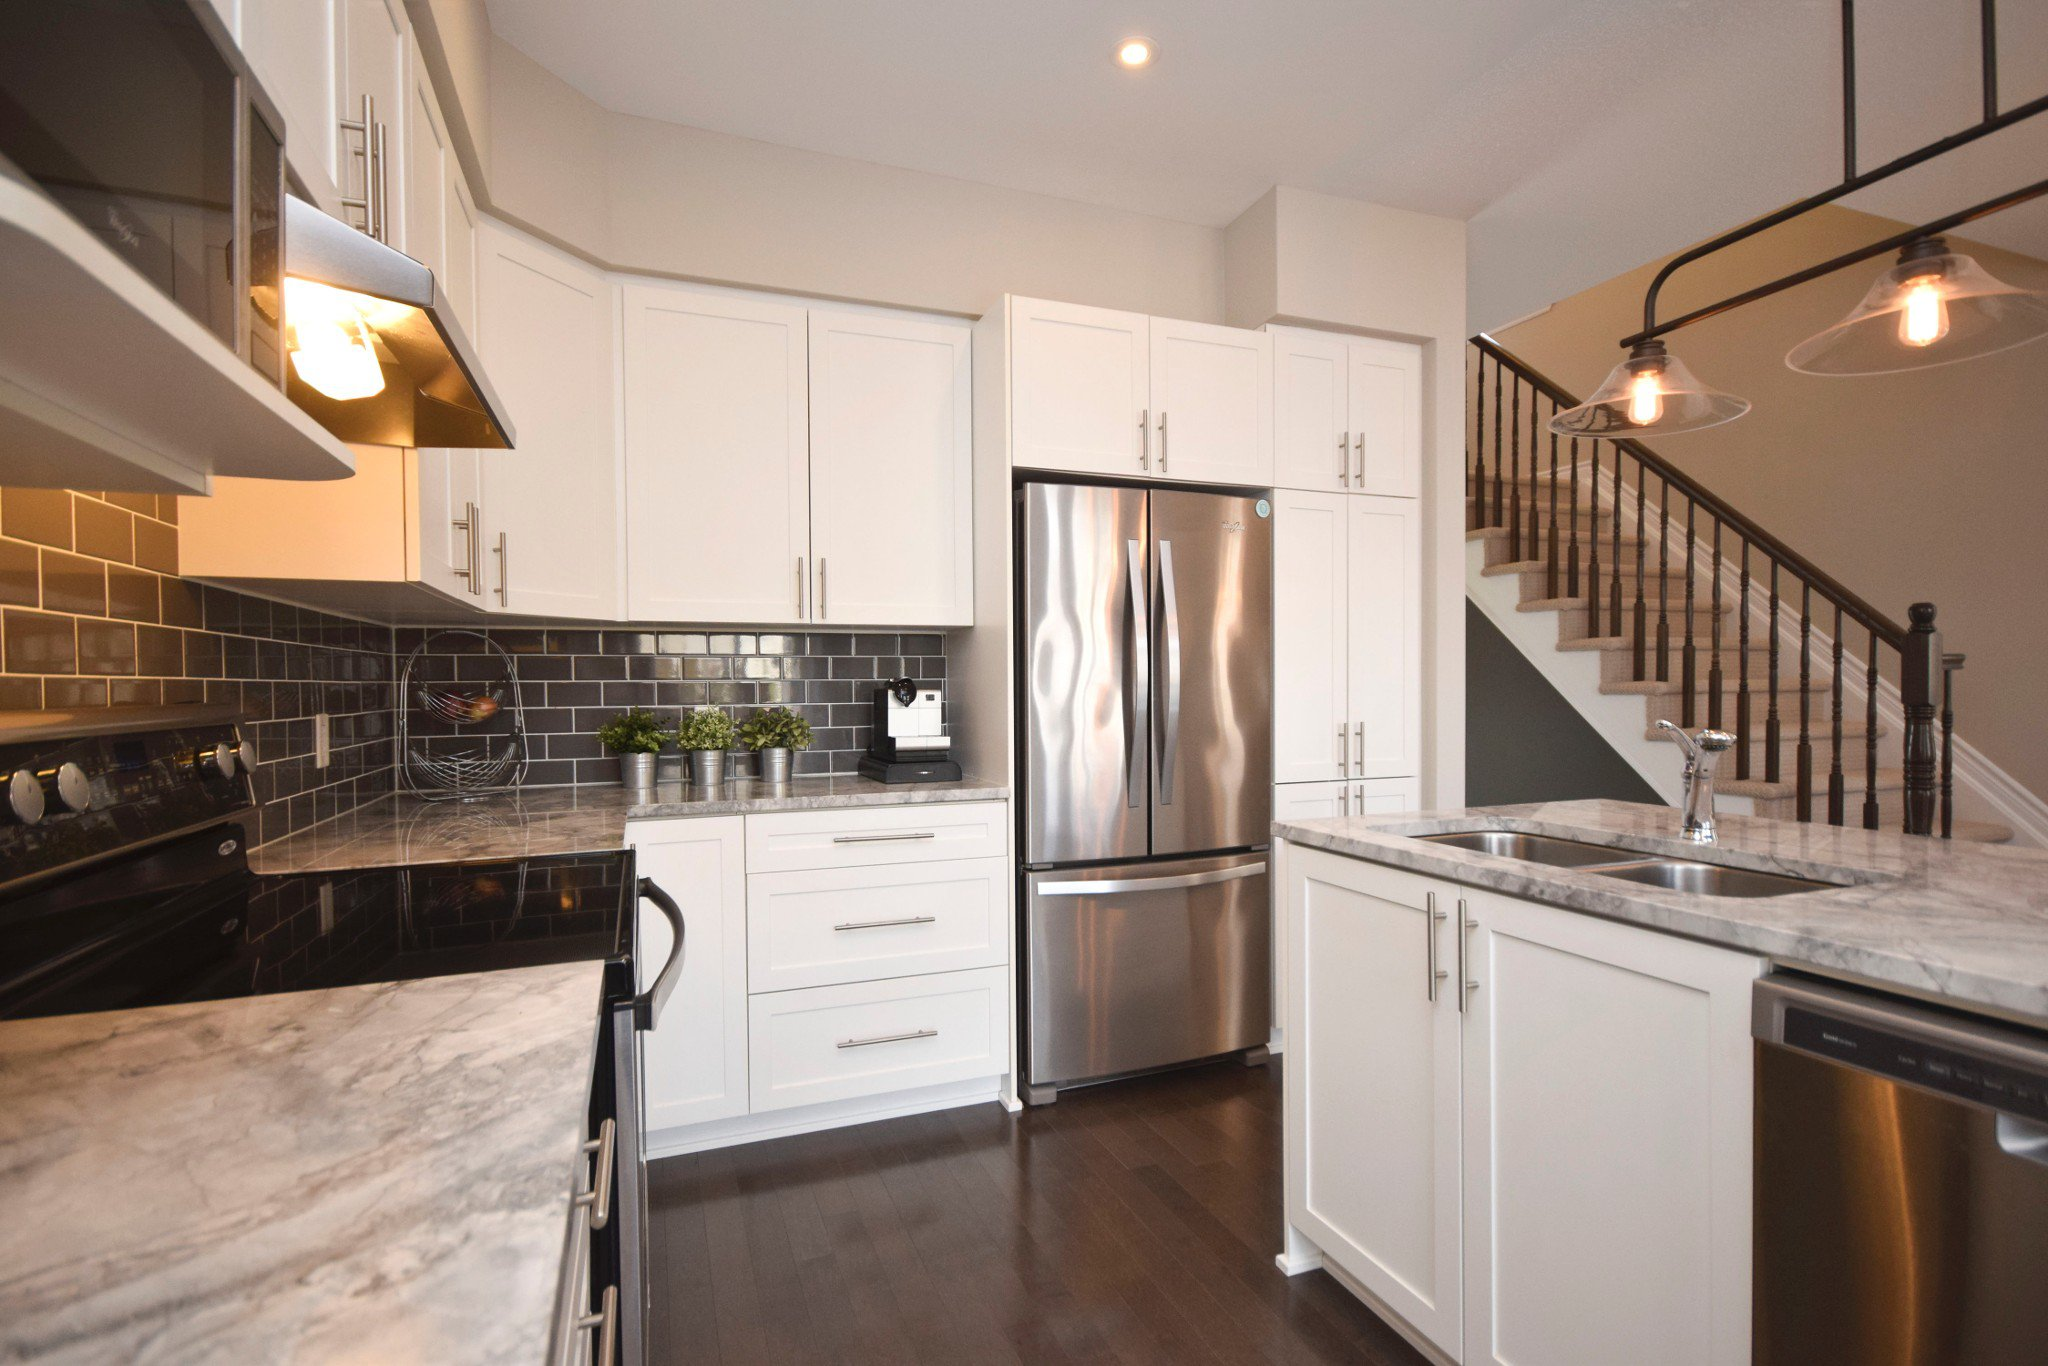 Photo 22: Photos: 131 Popplewell Crescent in Ottawa: Cedargrove / Fraserdale House for sale (Barrhaven)  : MLS®# 1130335